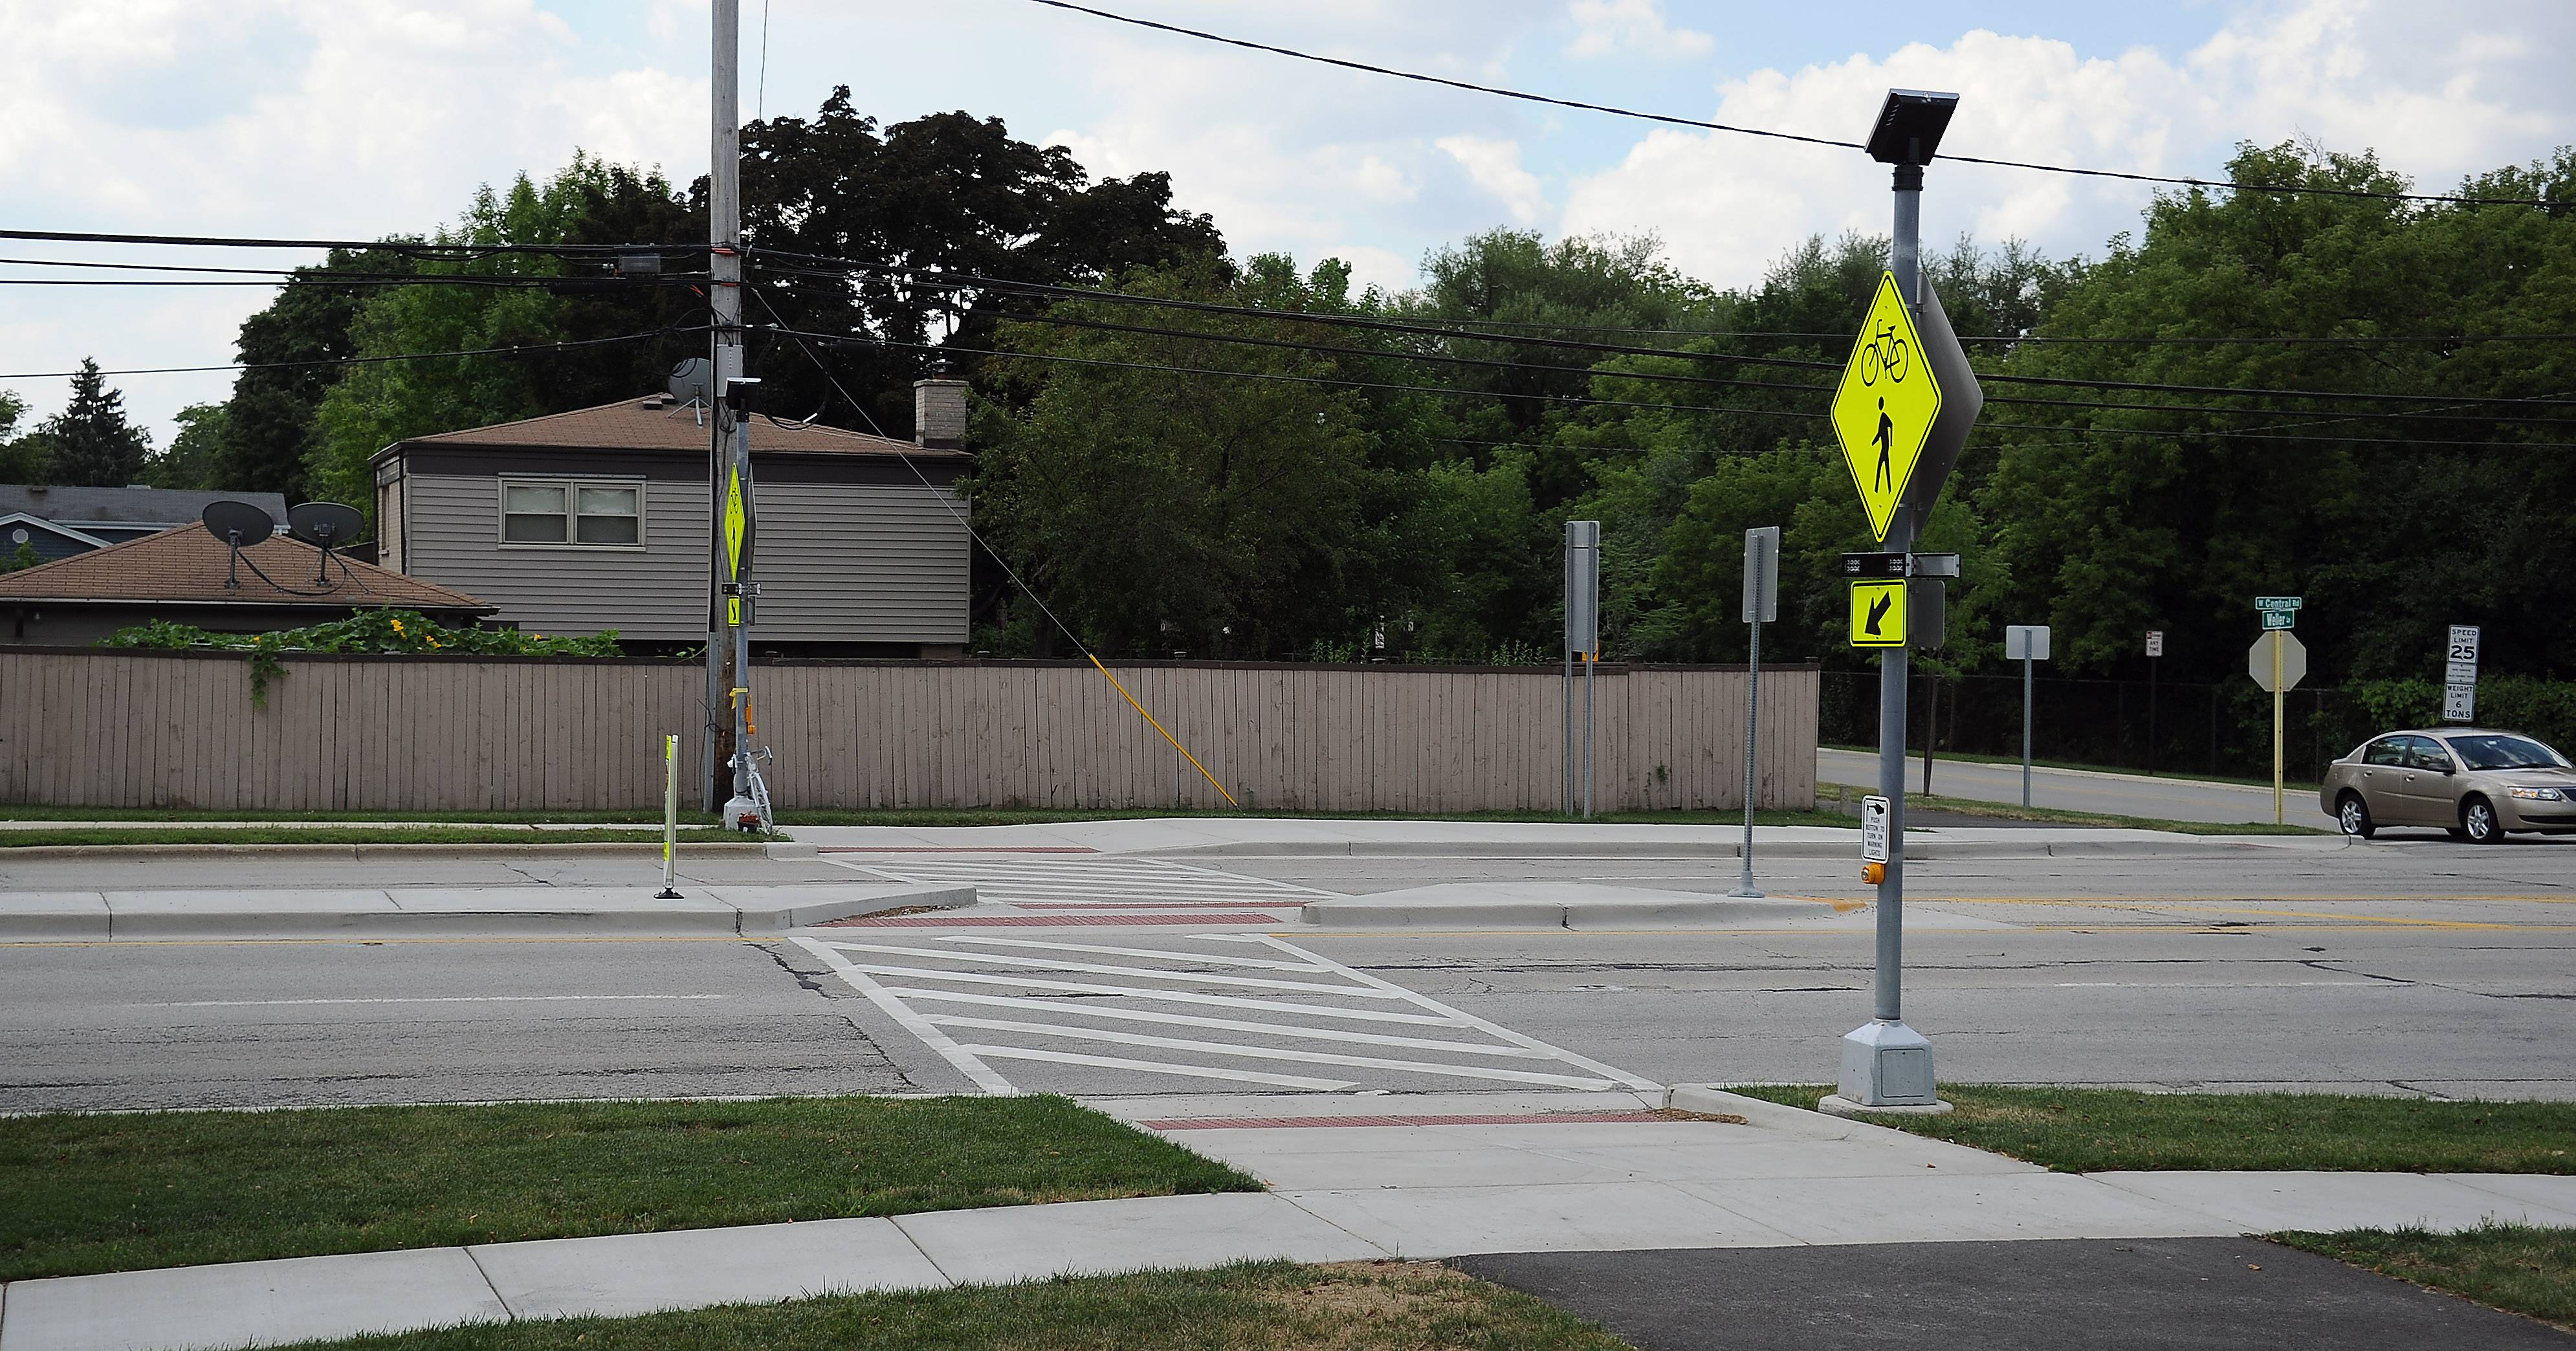 The crosswalk at Central Road and Melas Park is one of several in Mount Prospect that would get a safety makeover under plans unveiled by village officials.